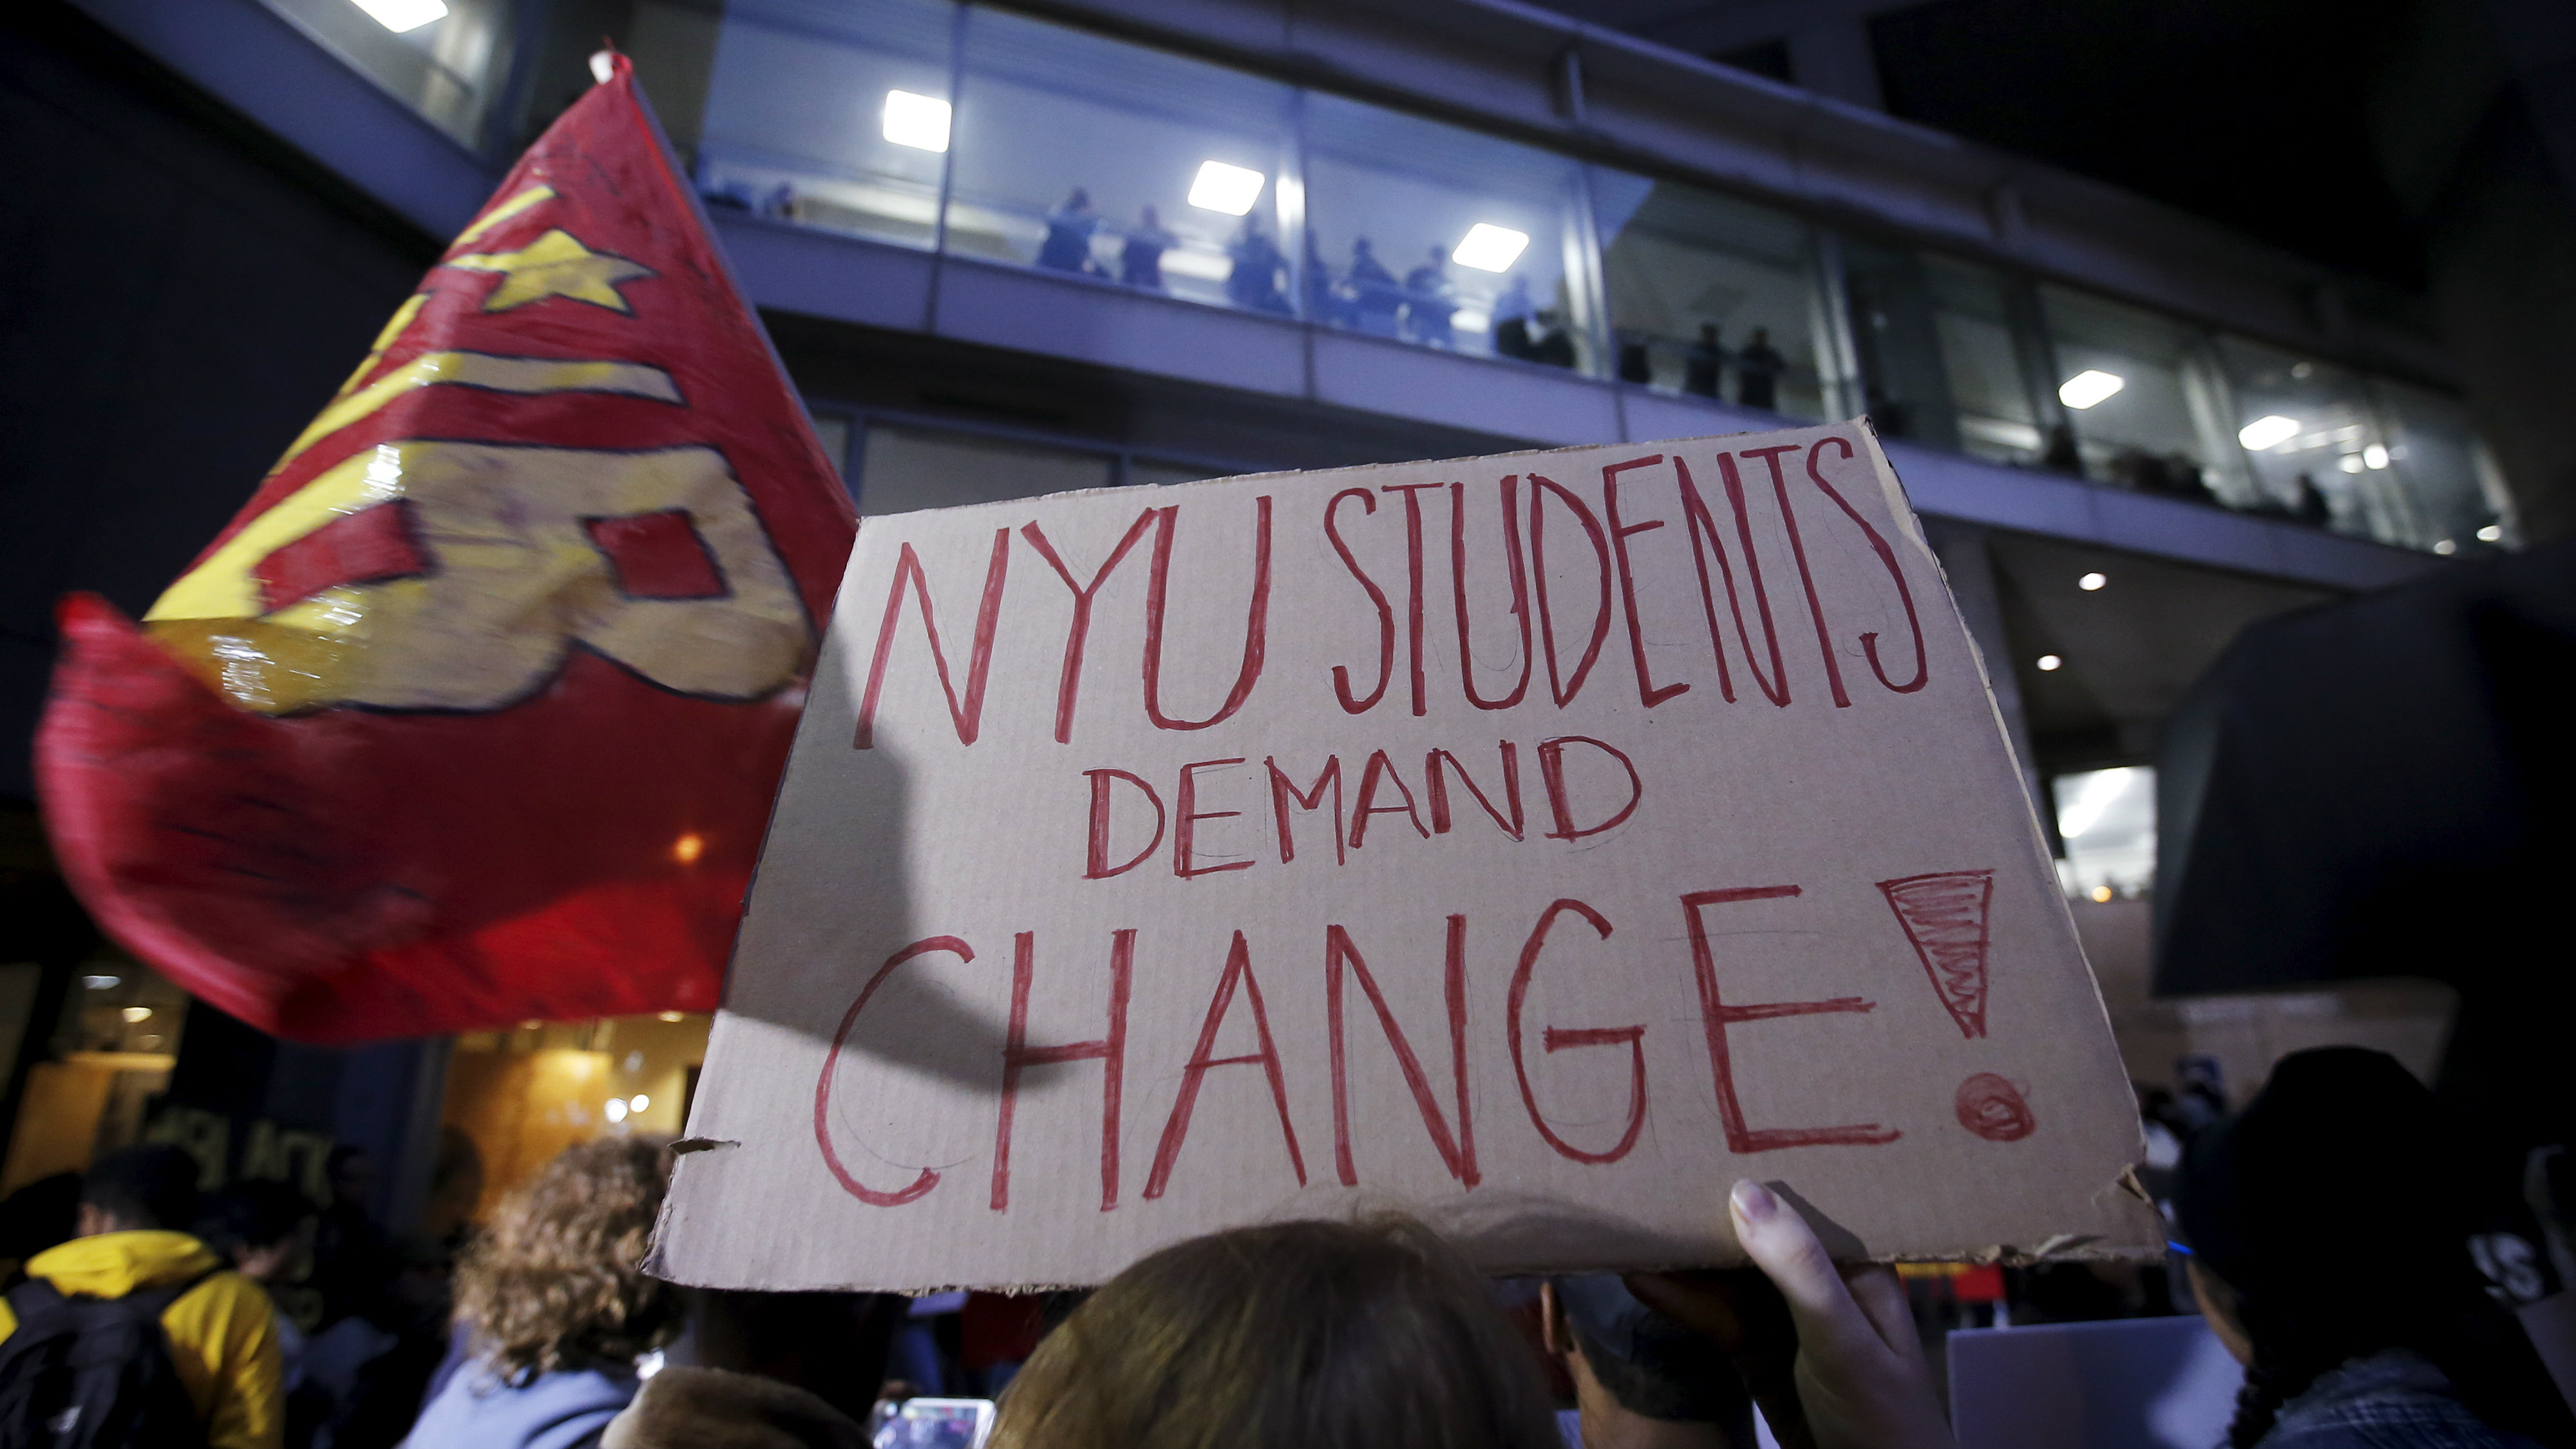 Students hold up signs as they attend a demonstration calling for lower tuition at Hunter College in the Manhattan borough of New York November 12, 2015. Students held rallies on college campuses across the United States on Thursday to protest ballooning student loan debt for higher education and rally for tuition-free public colleges and a minimum wage hike for campus workers.